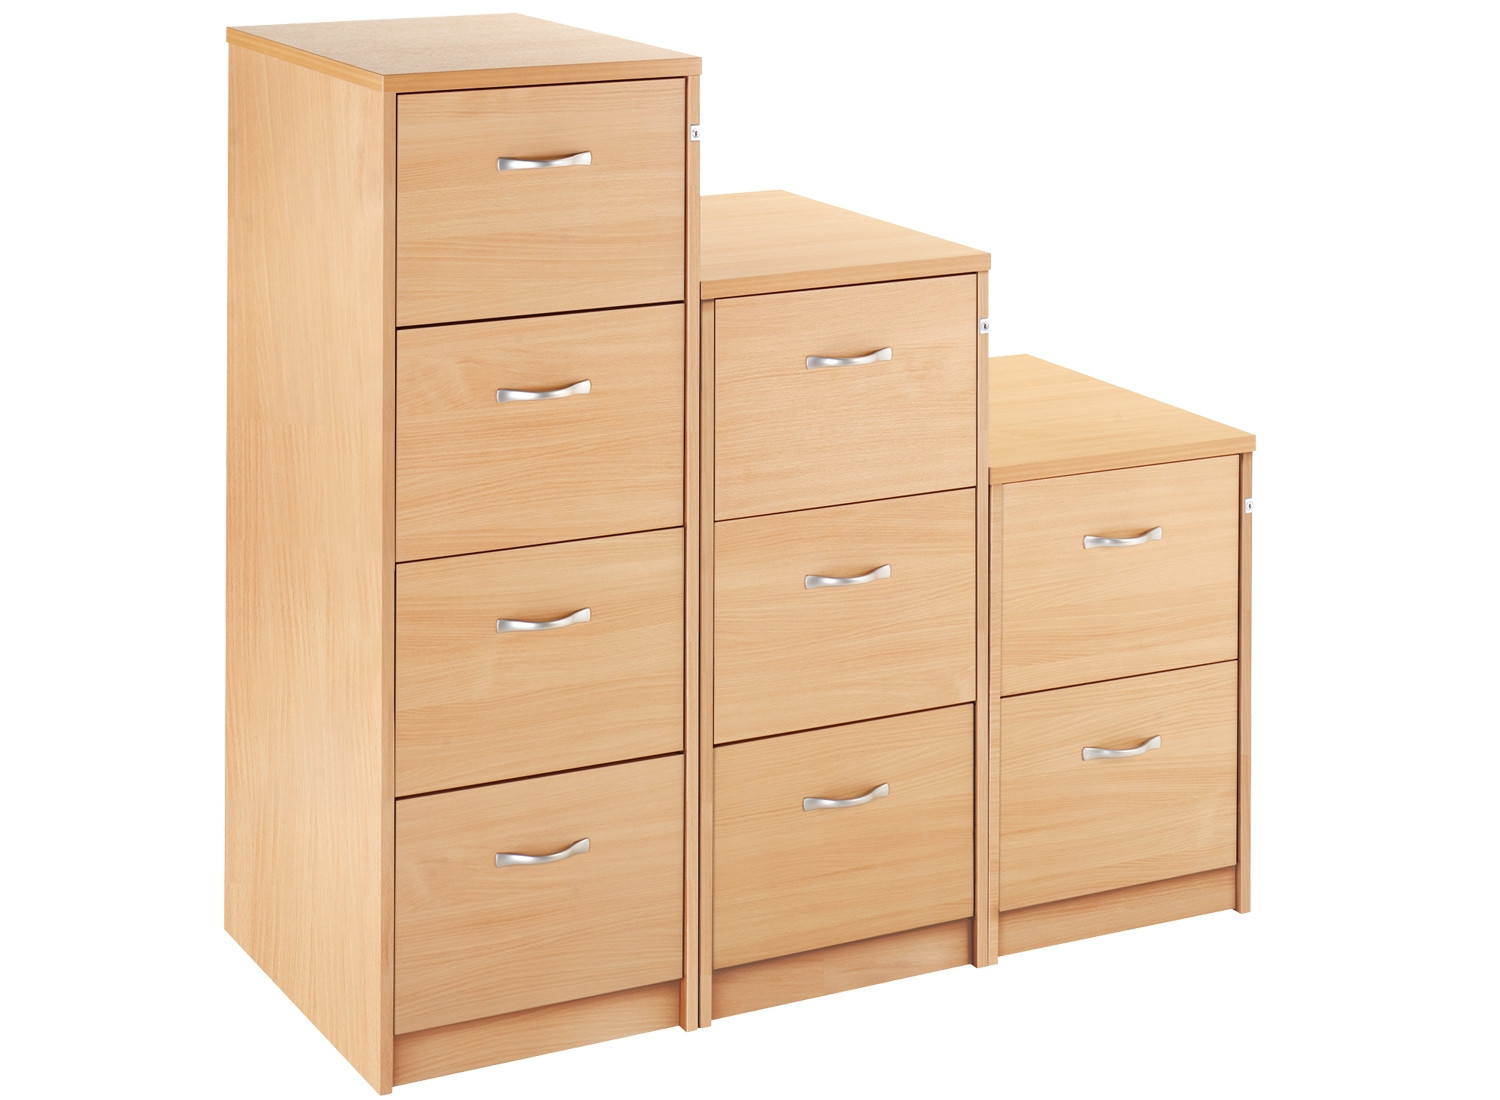 Next-Day Tully Filing Cabinets